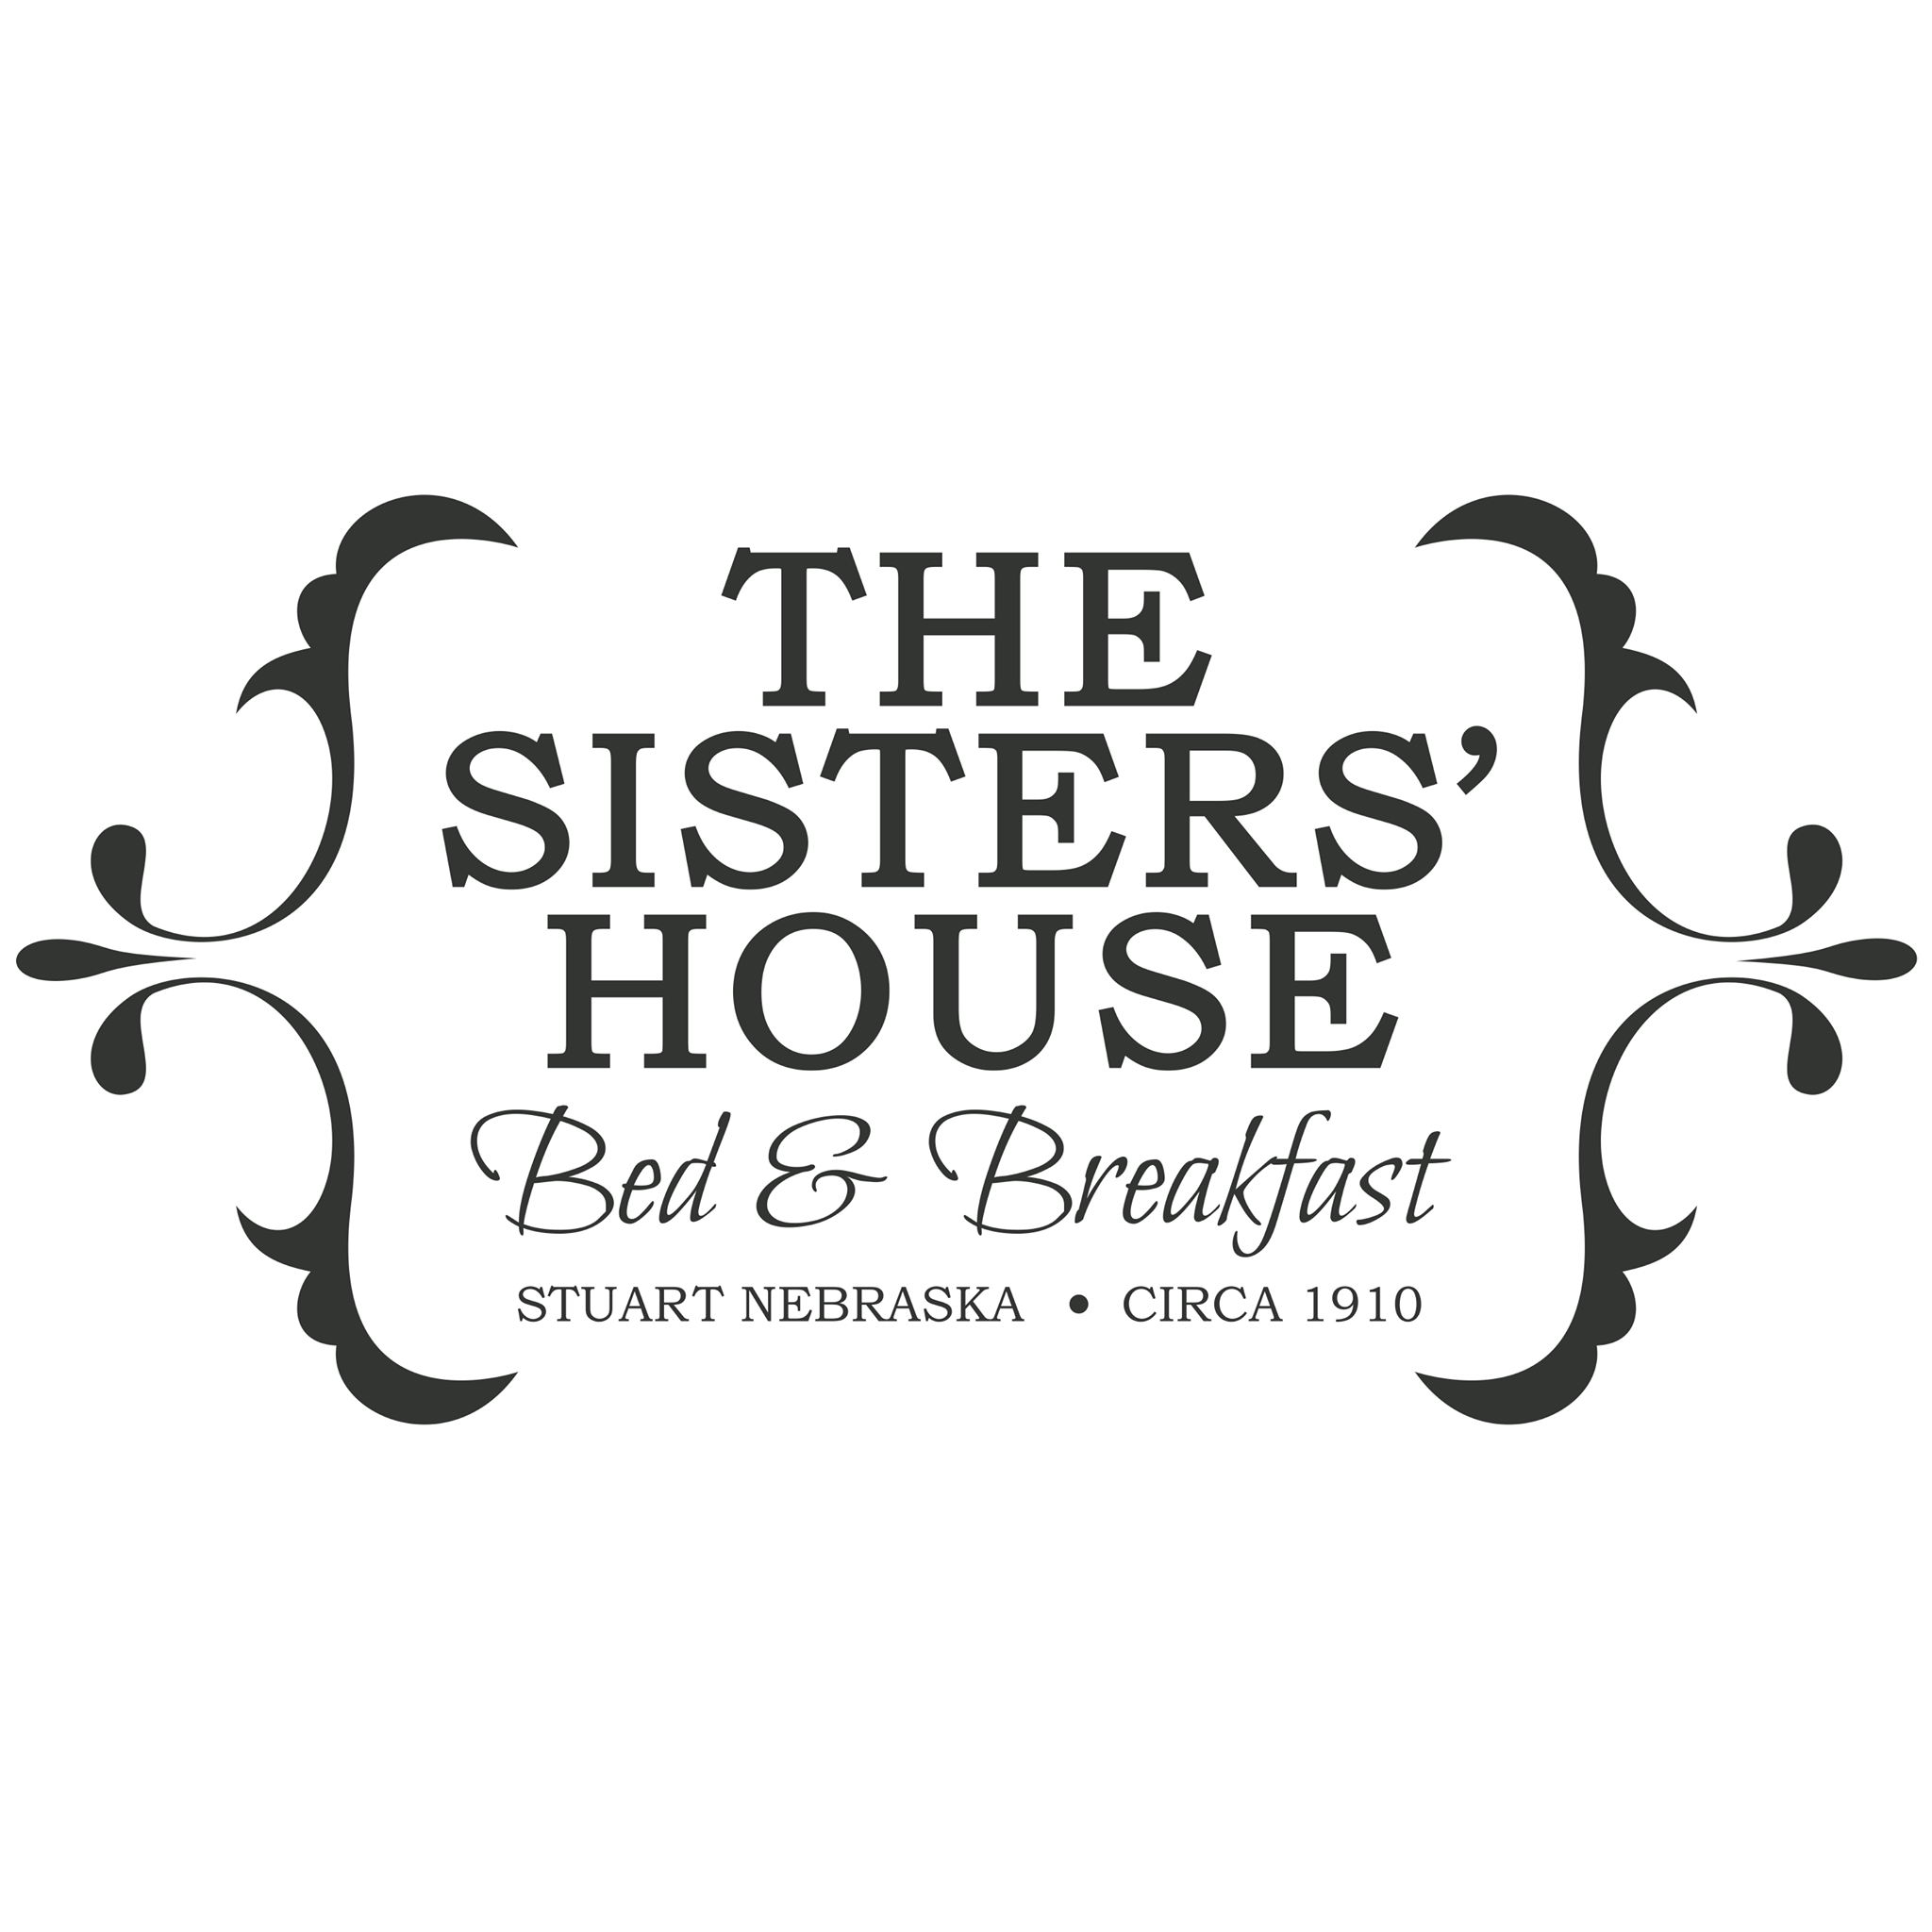 The Sisters' House